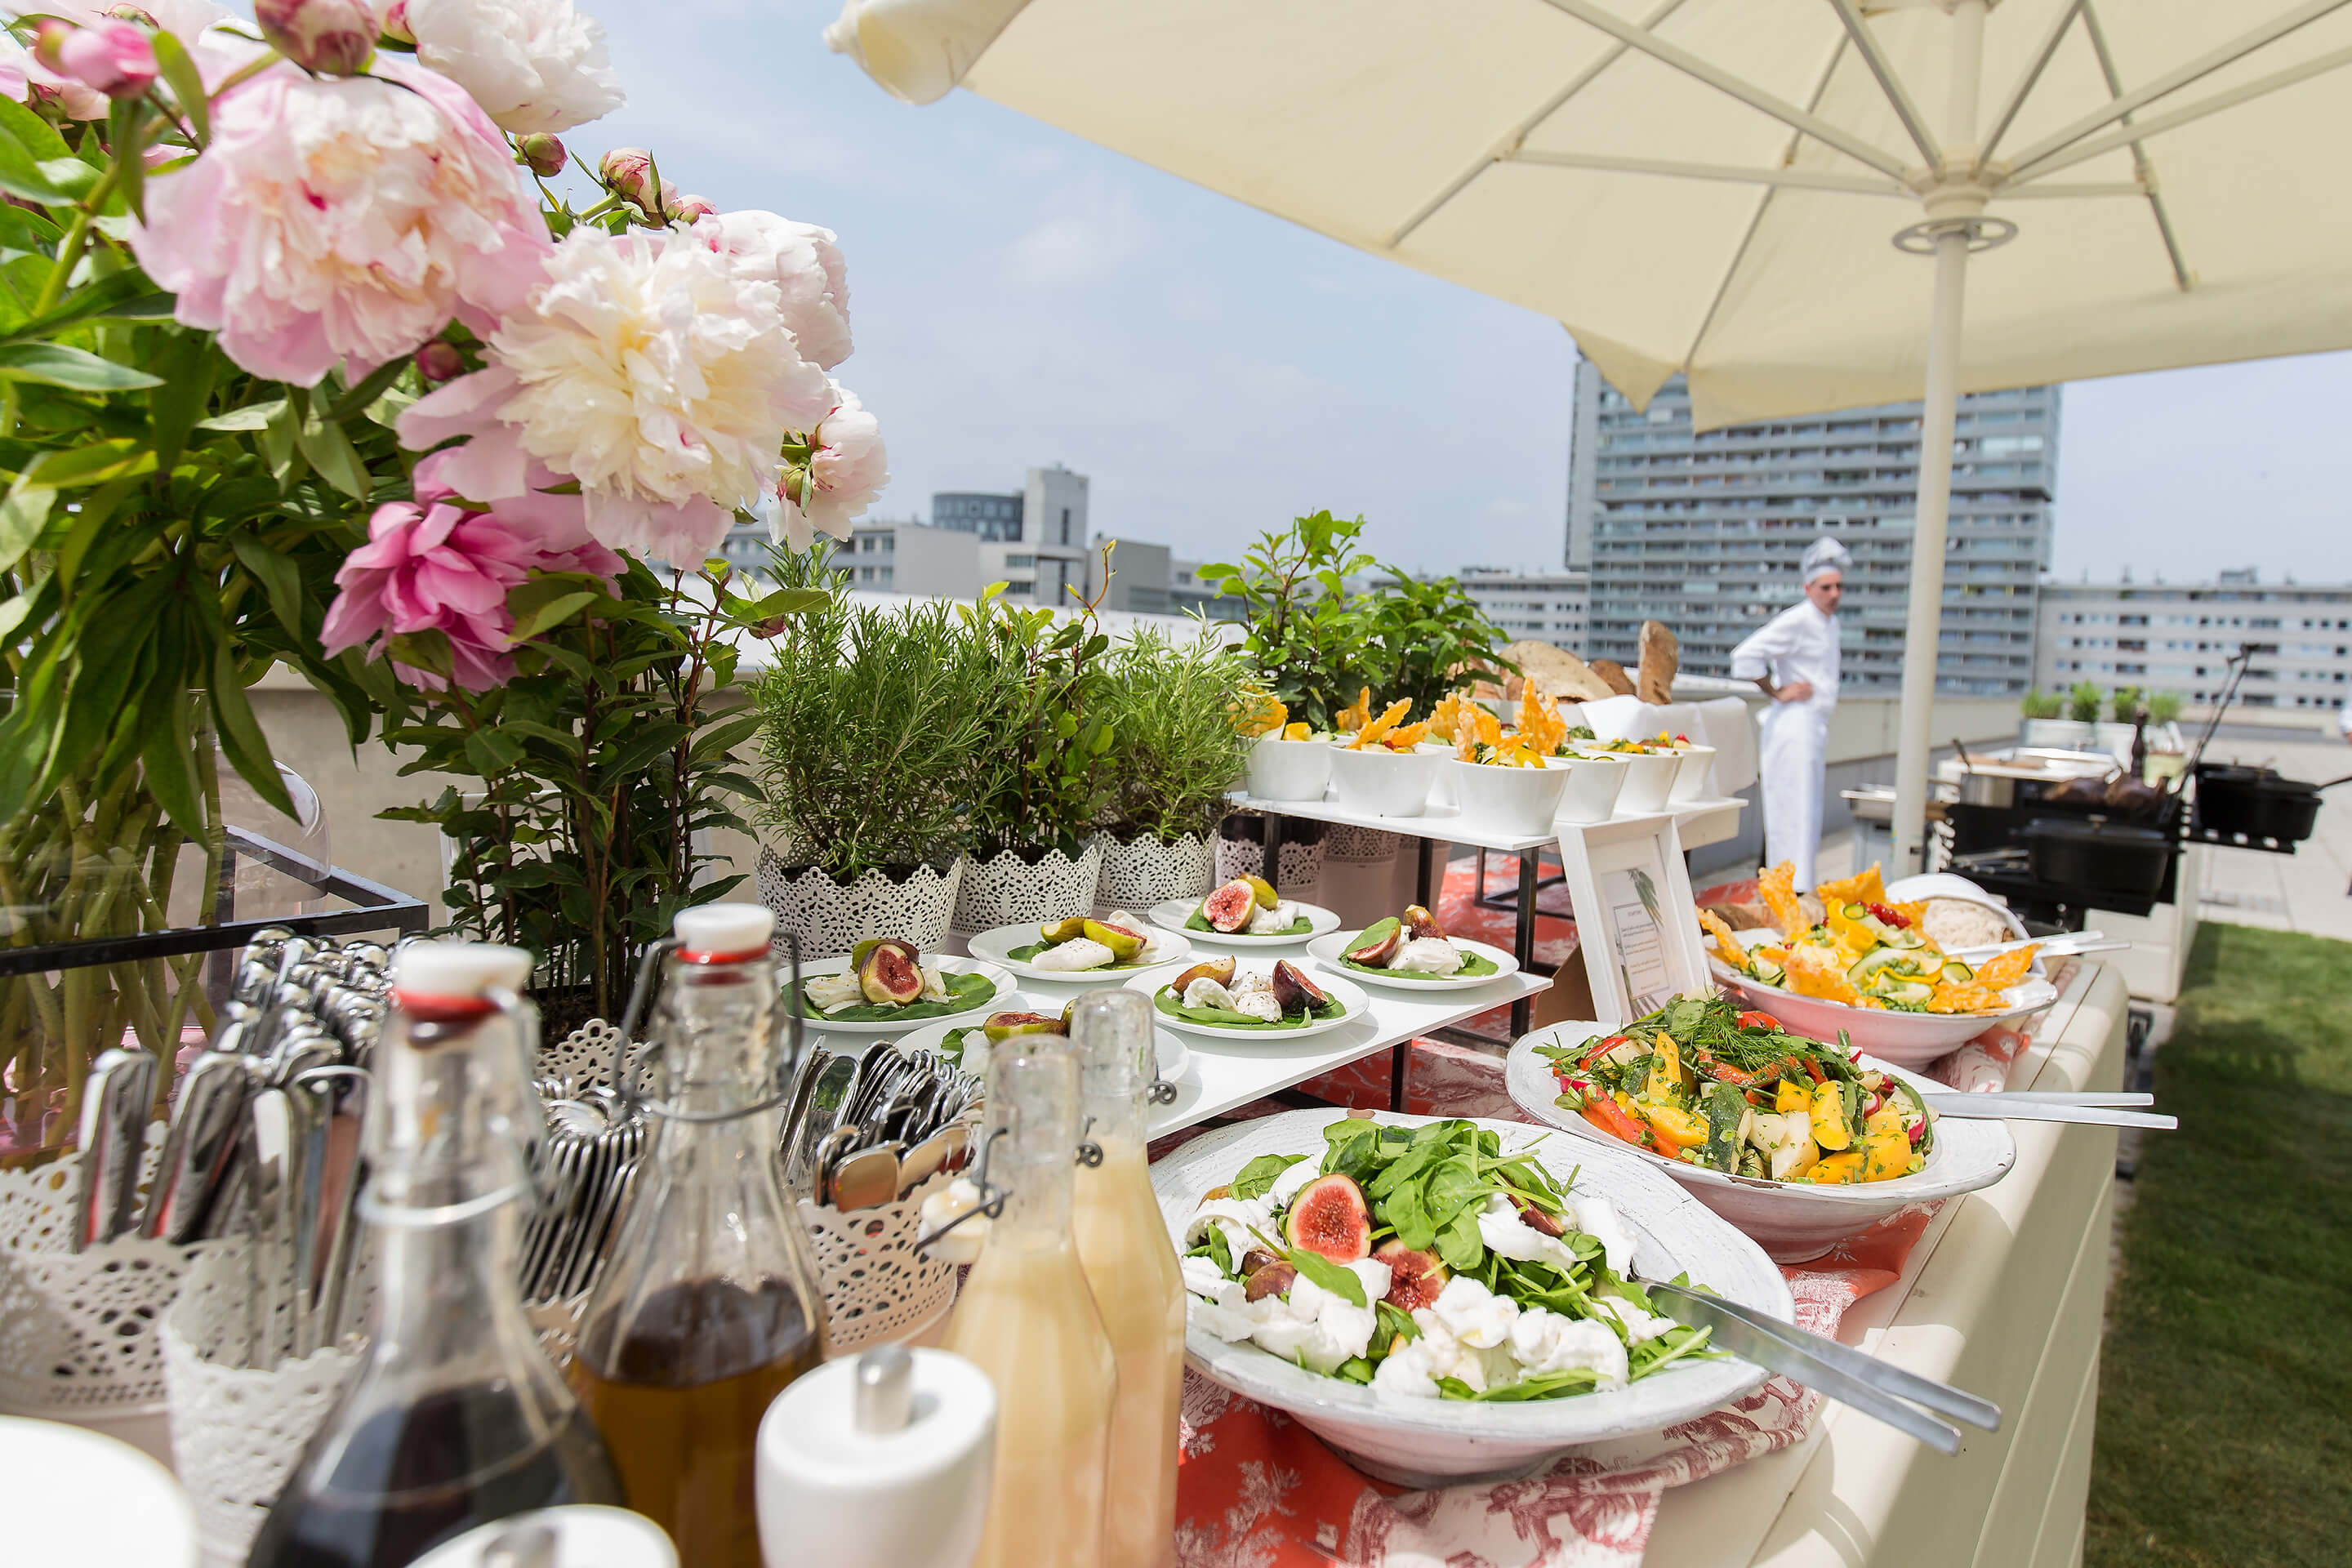 Foto: Haus Level 3 Rooftop Terrasse Motto Catering